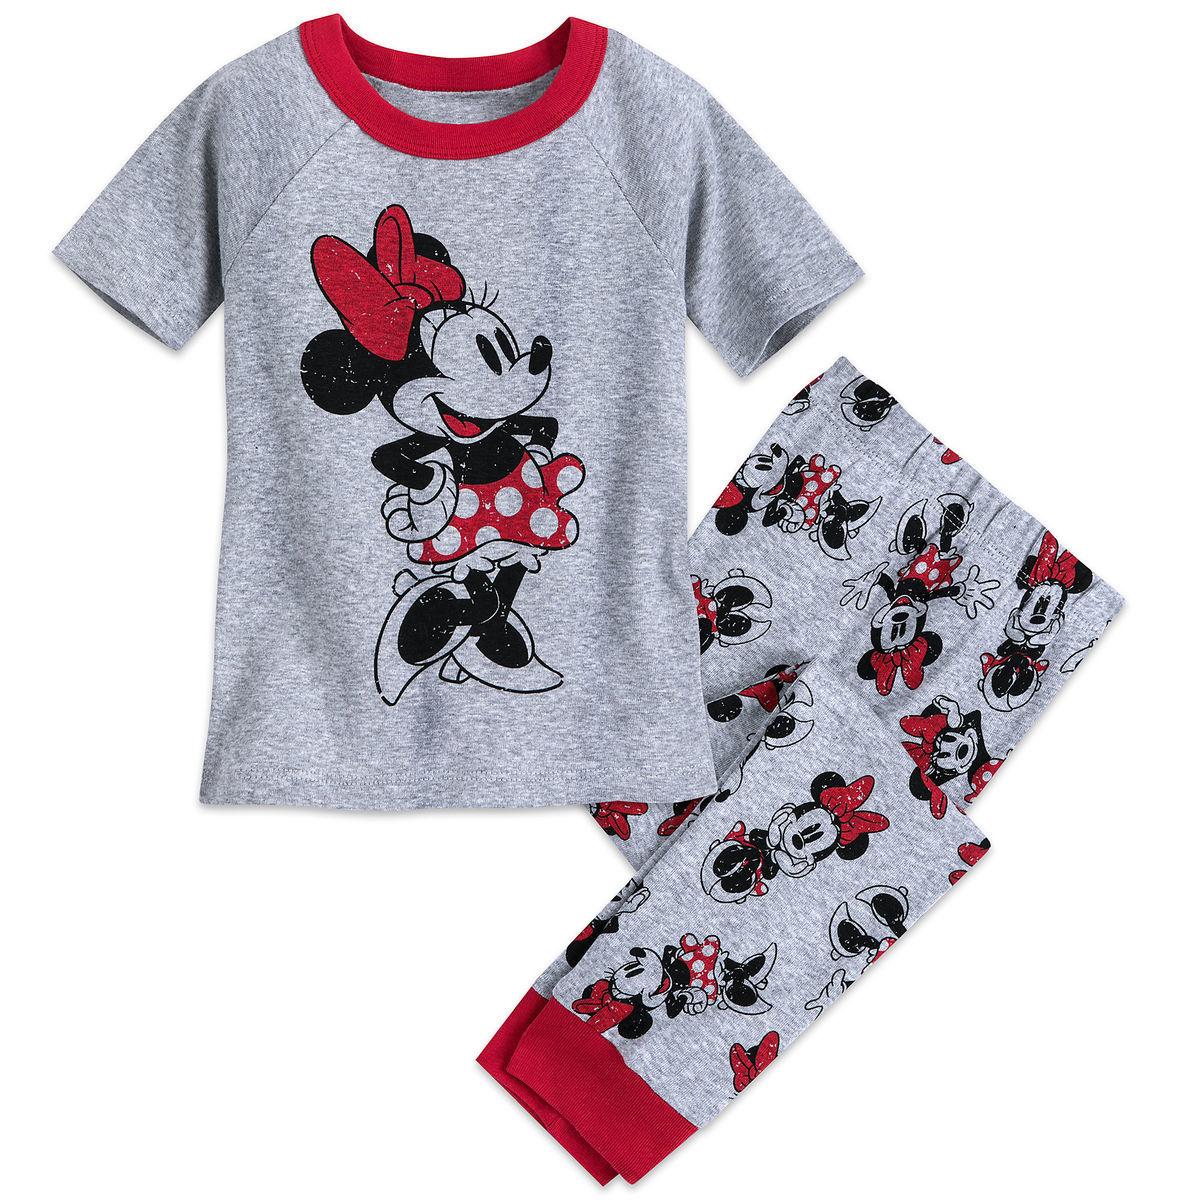 Product Image of Minnie Mouse Pajama Set for Girls - Mickey and Minnie  Family Sleepwear   a82ffceae